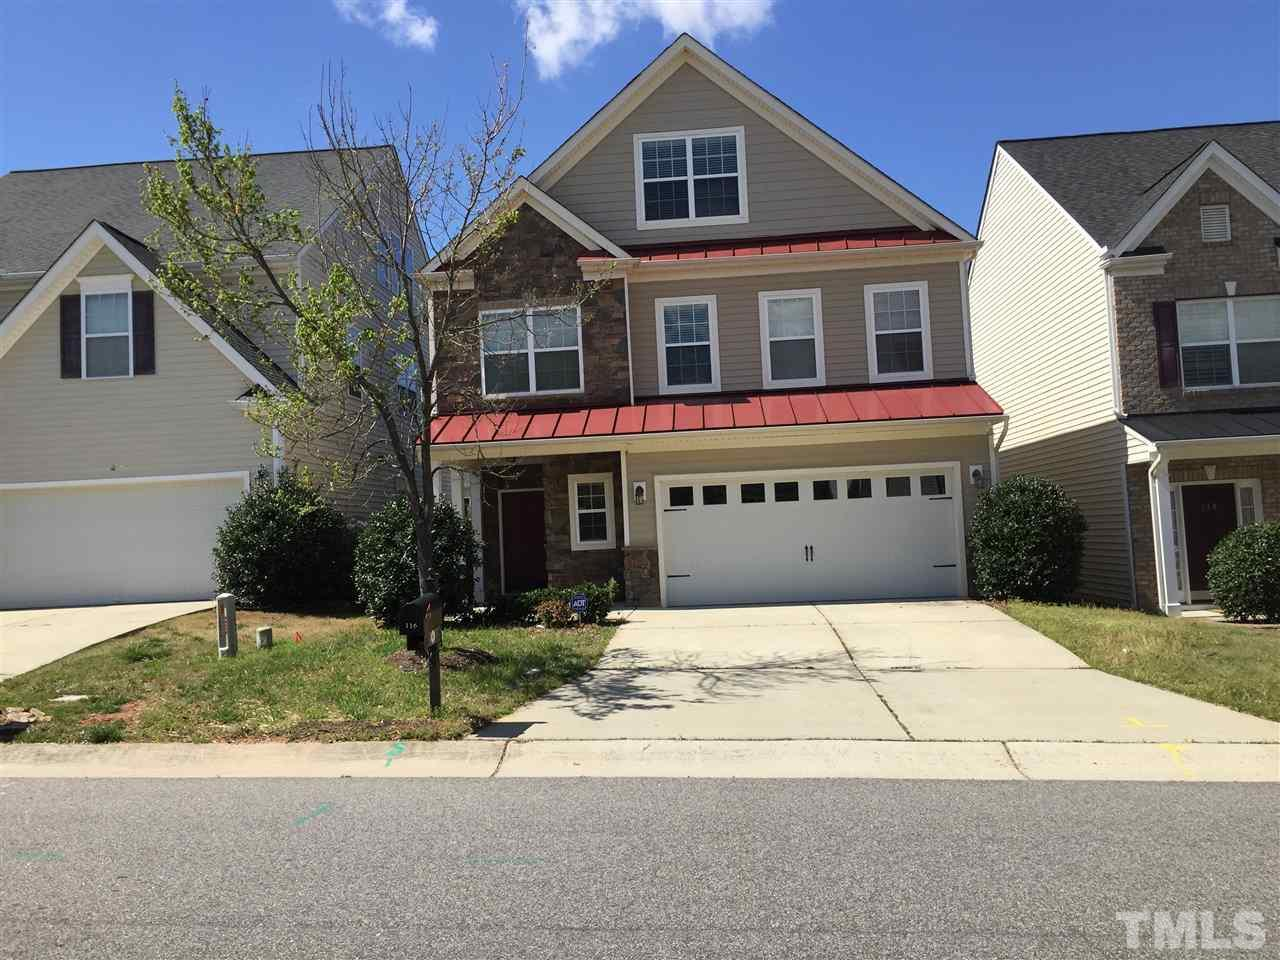 116 Station Drive, Morrisville, NC 27560